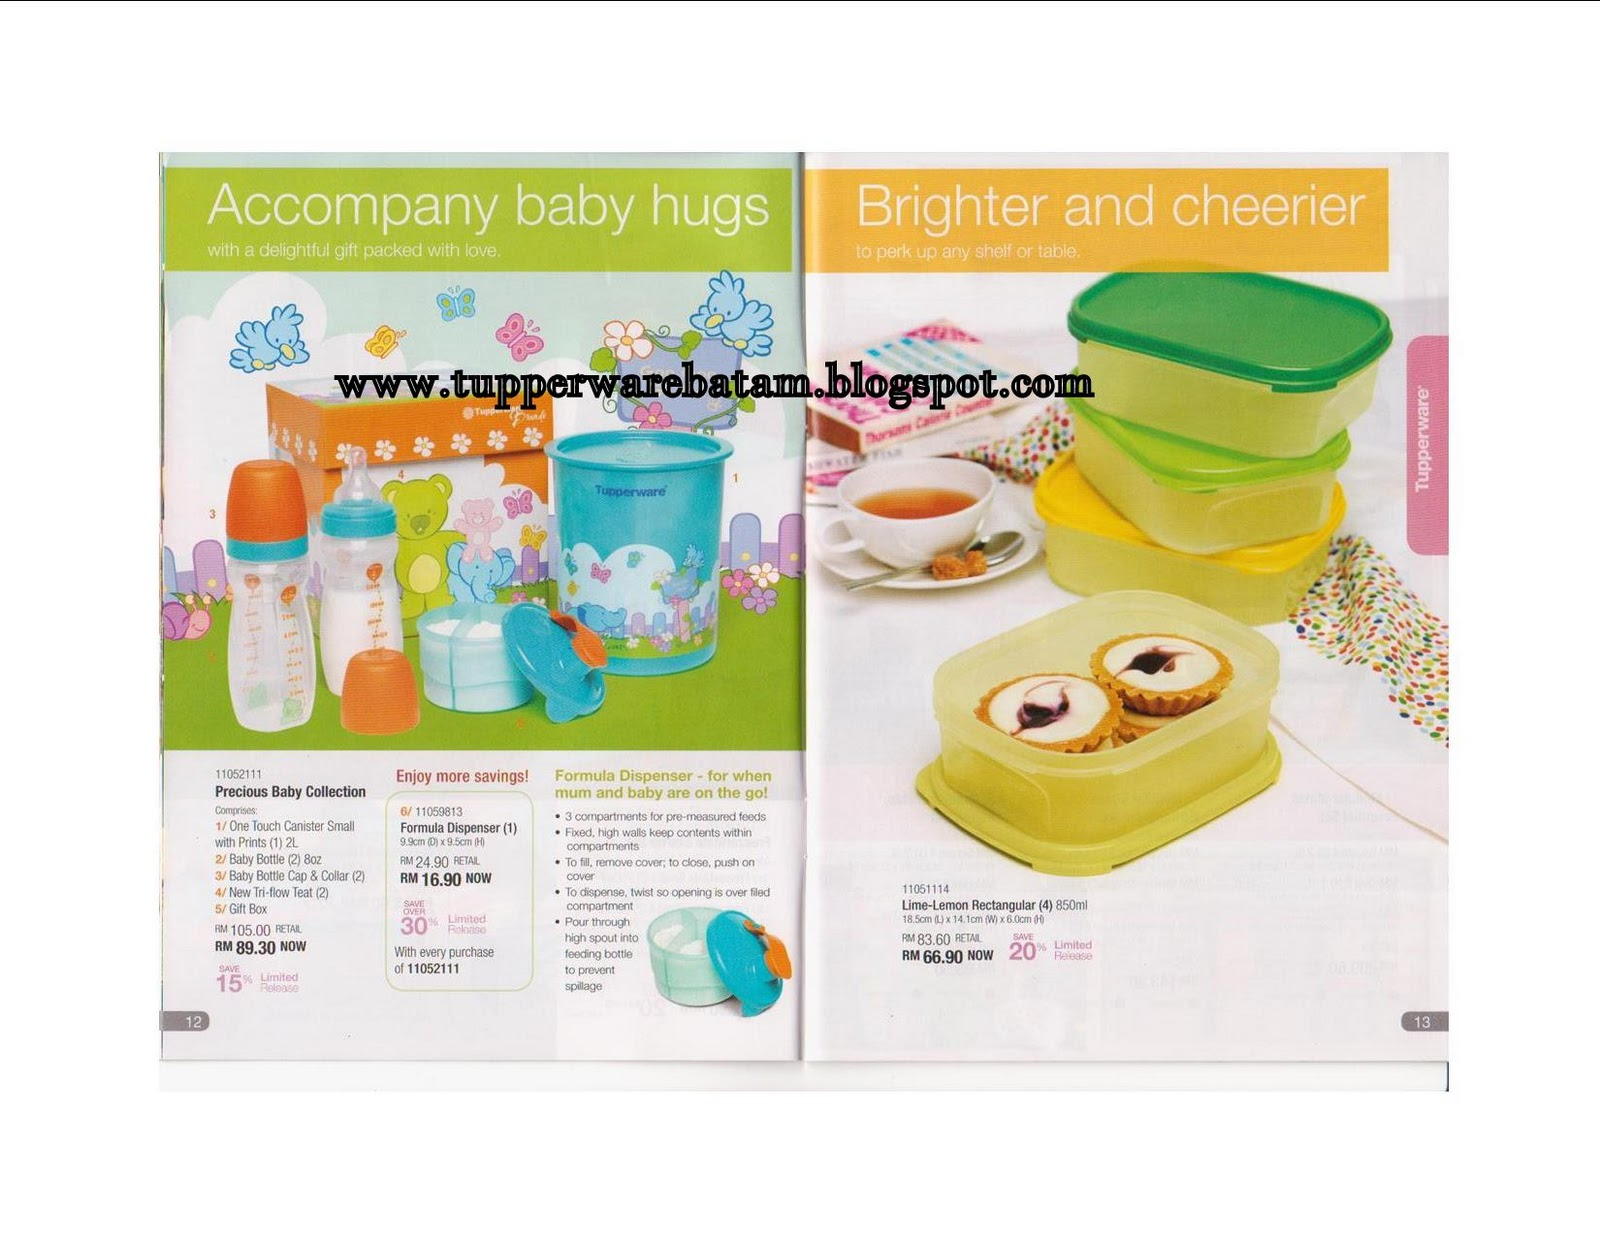 Tupperware | World-class quality you can trust everyday